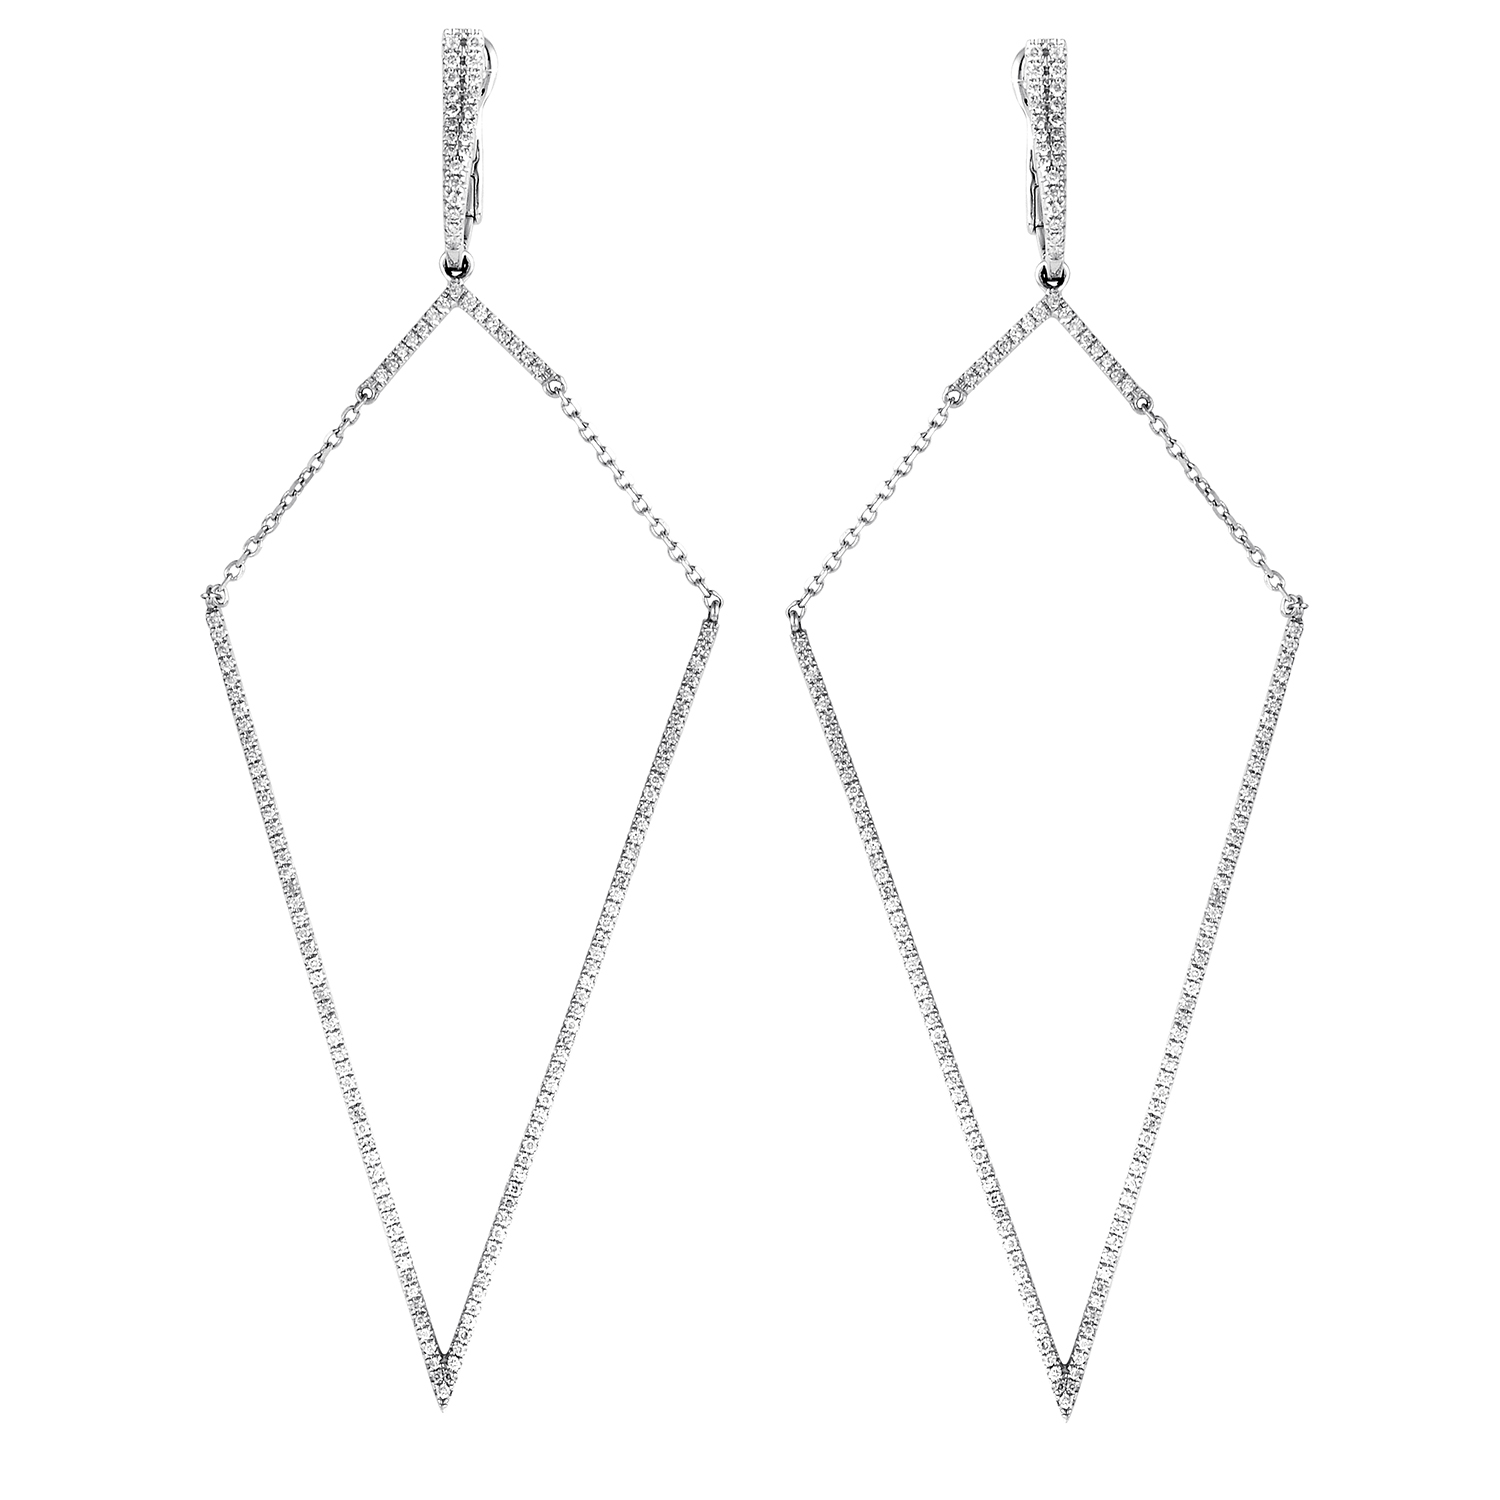 Women's 18K White Gold Diamond Pave Dangle Earrings SE06191EFBZ